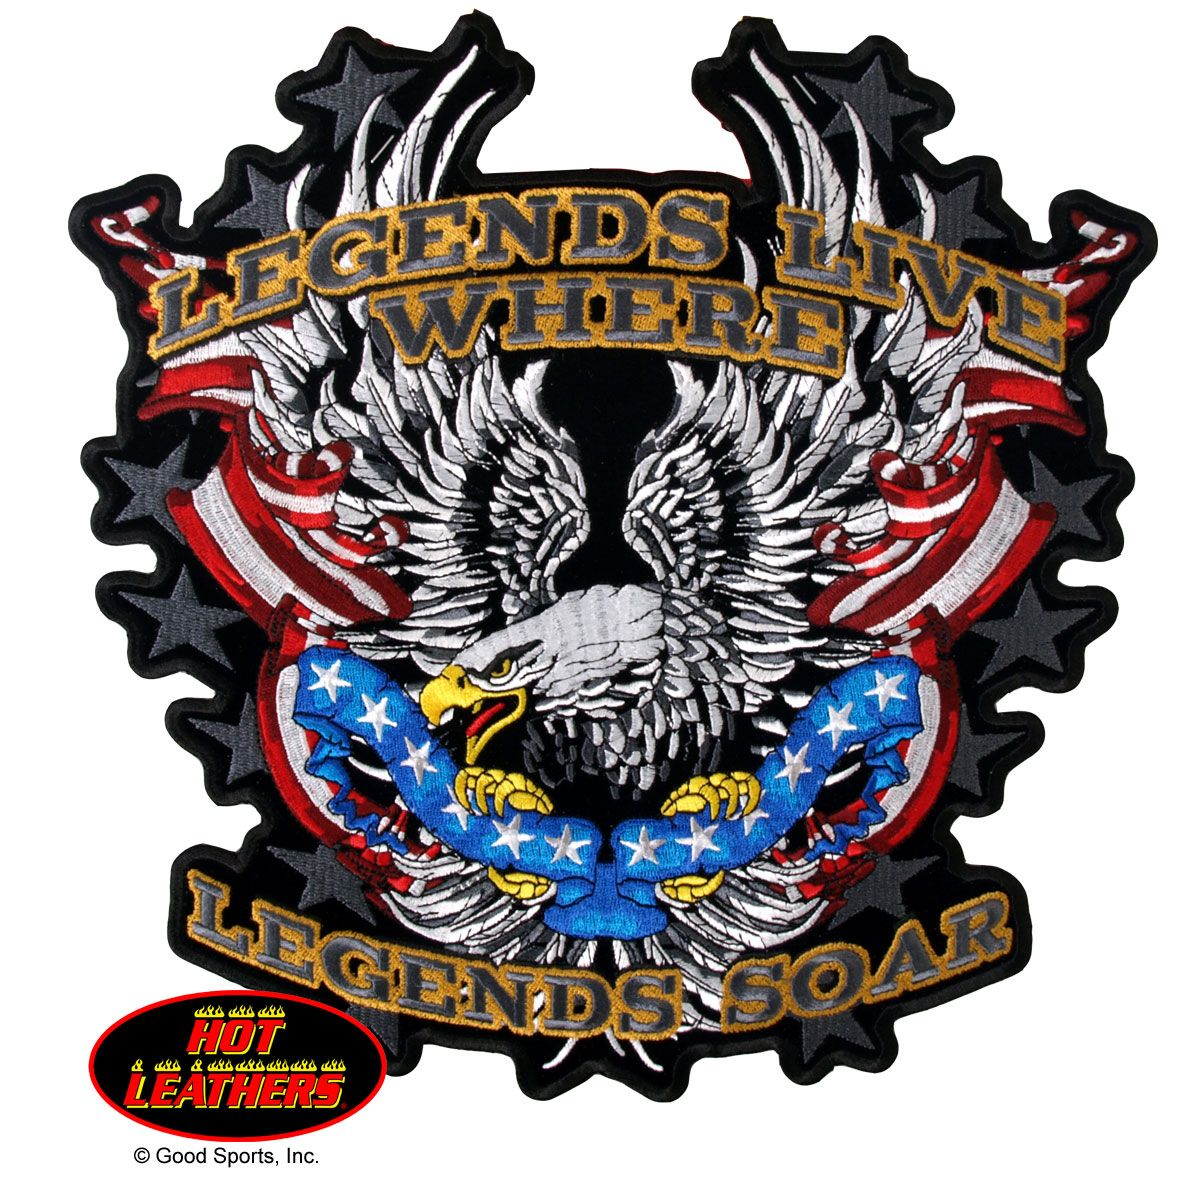 Hot Leathers Legends Soar Patriotic Eagle Patch